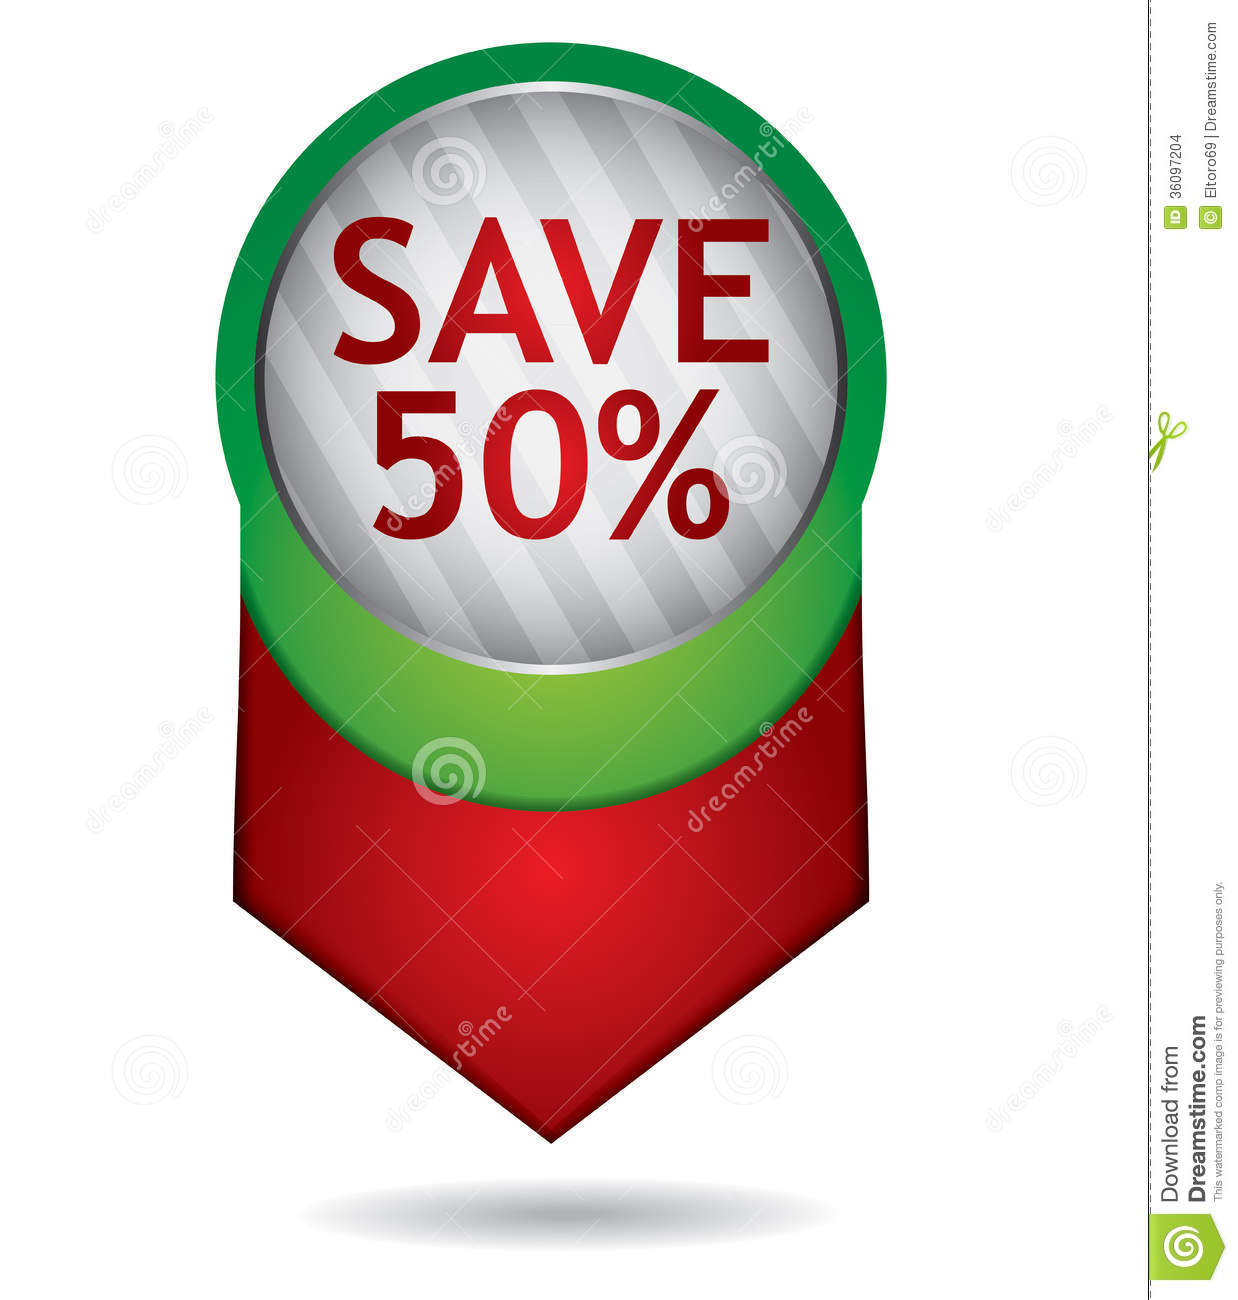 Price Tag Template Stock Images - Image: 36097204